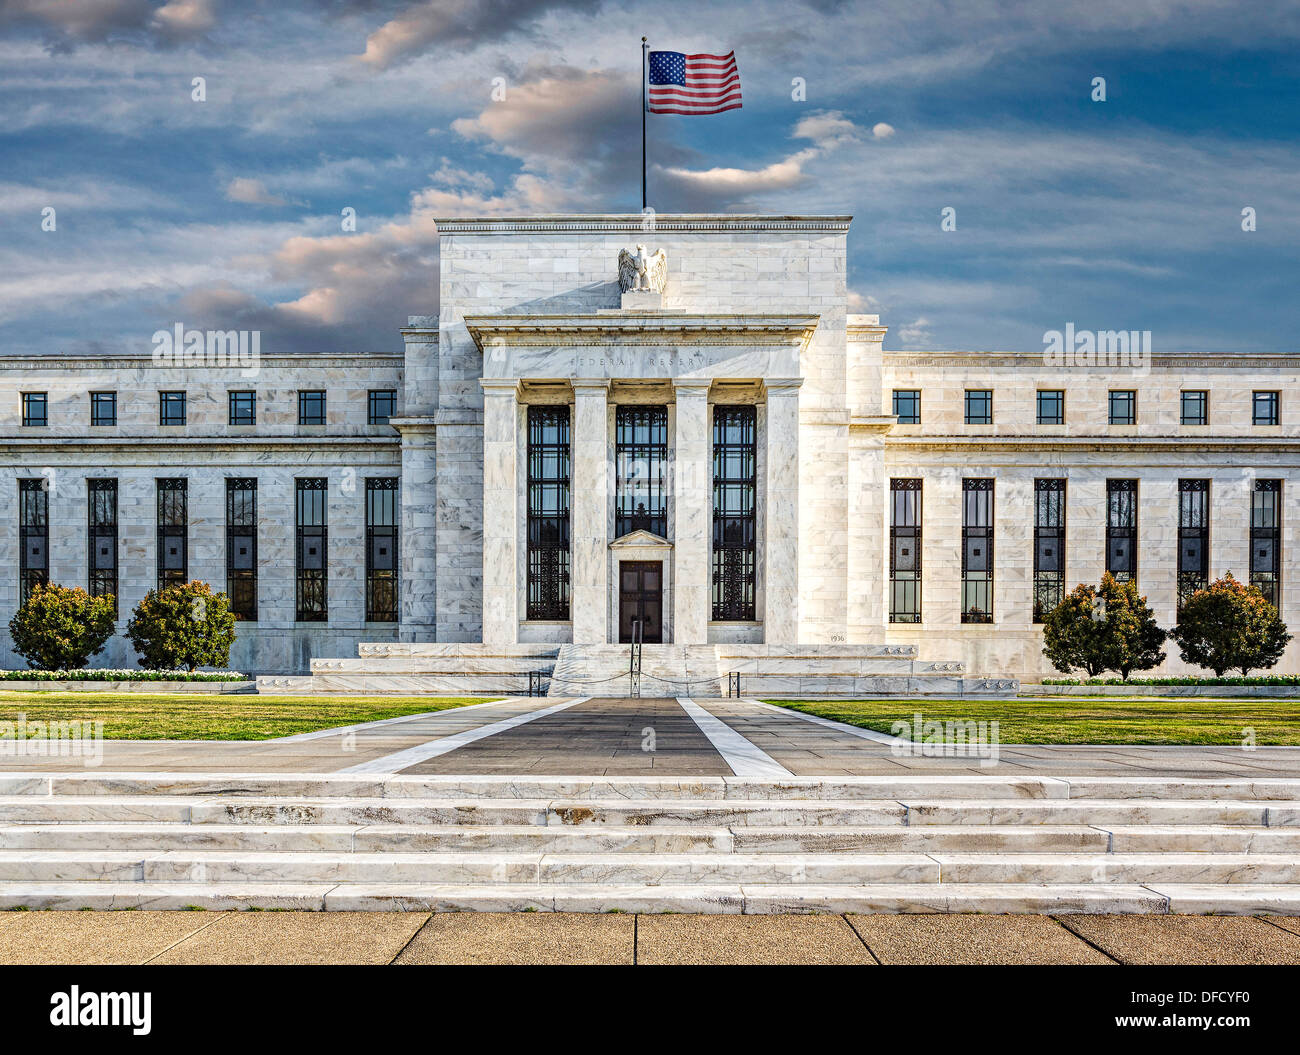 A front view of the Unites States Federal Reserve Building in the nations capital Washington DC. Stock Photo